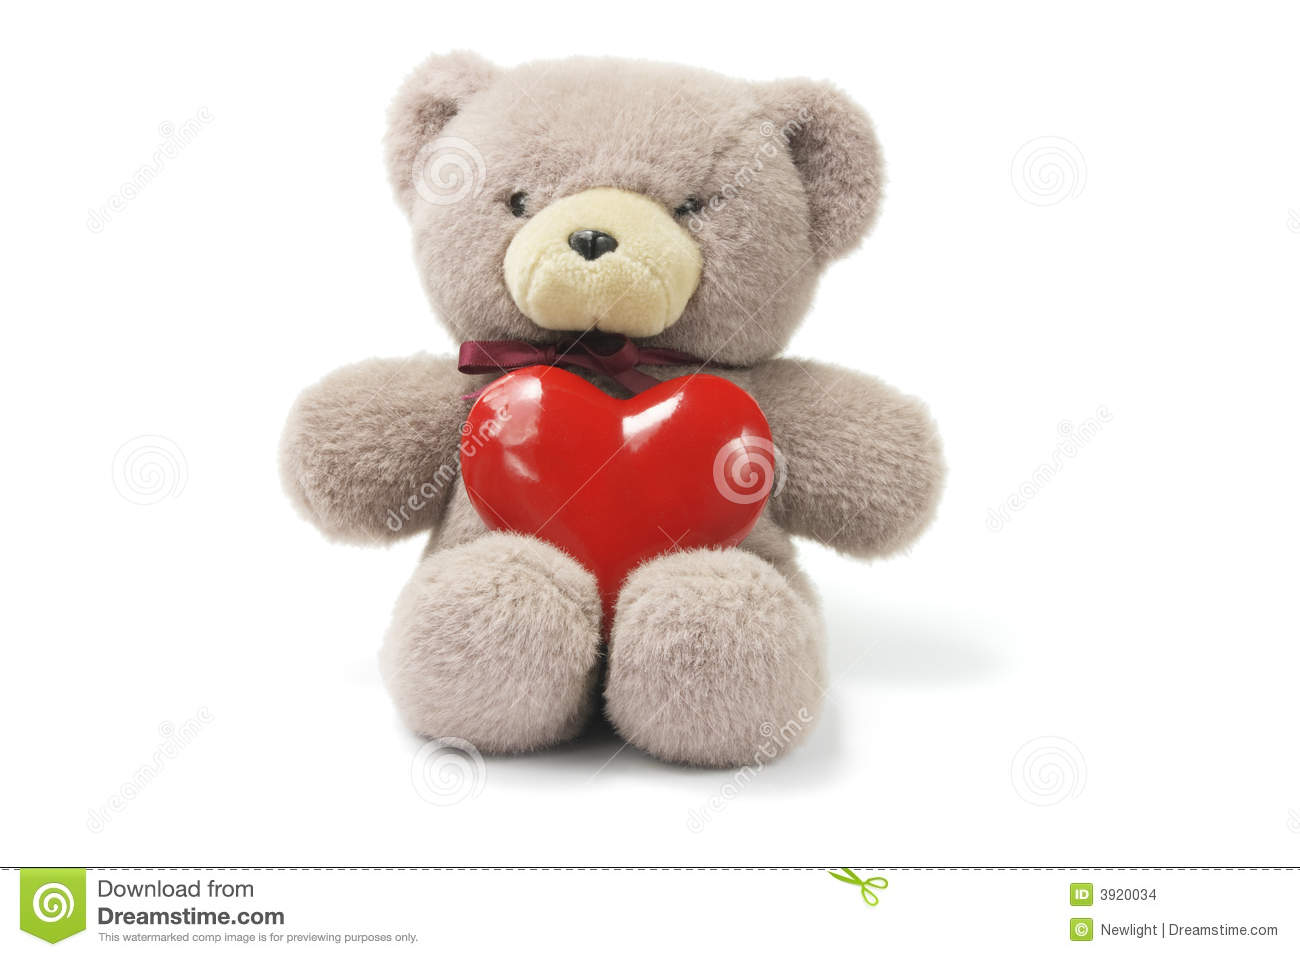 Teddy bear with love images - photo#28